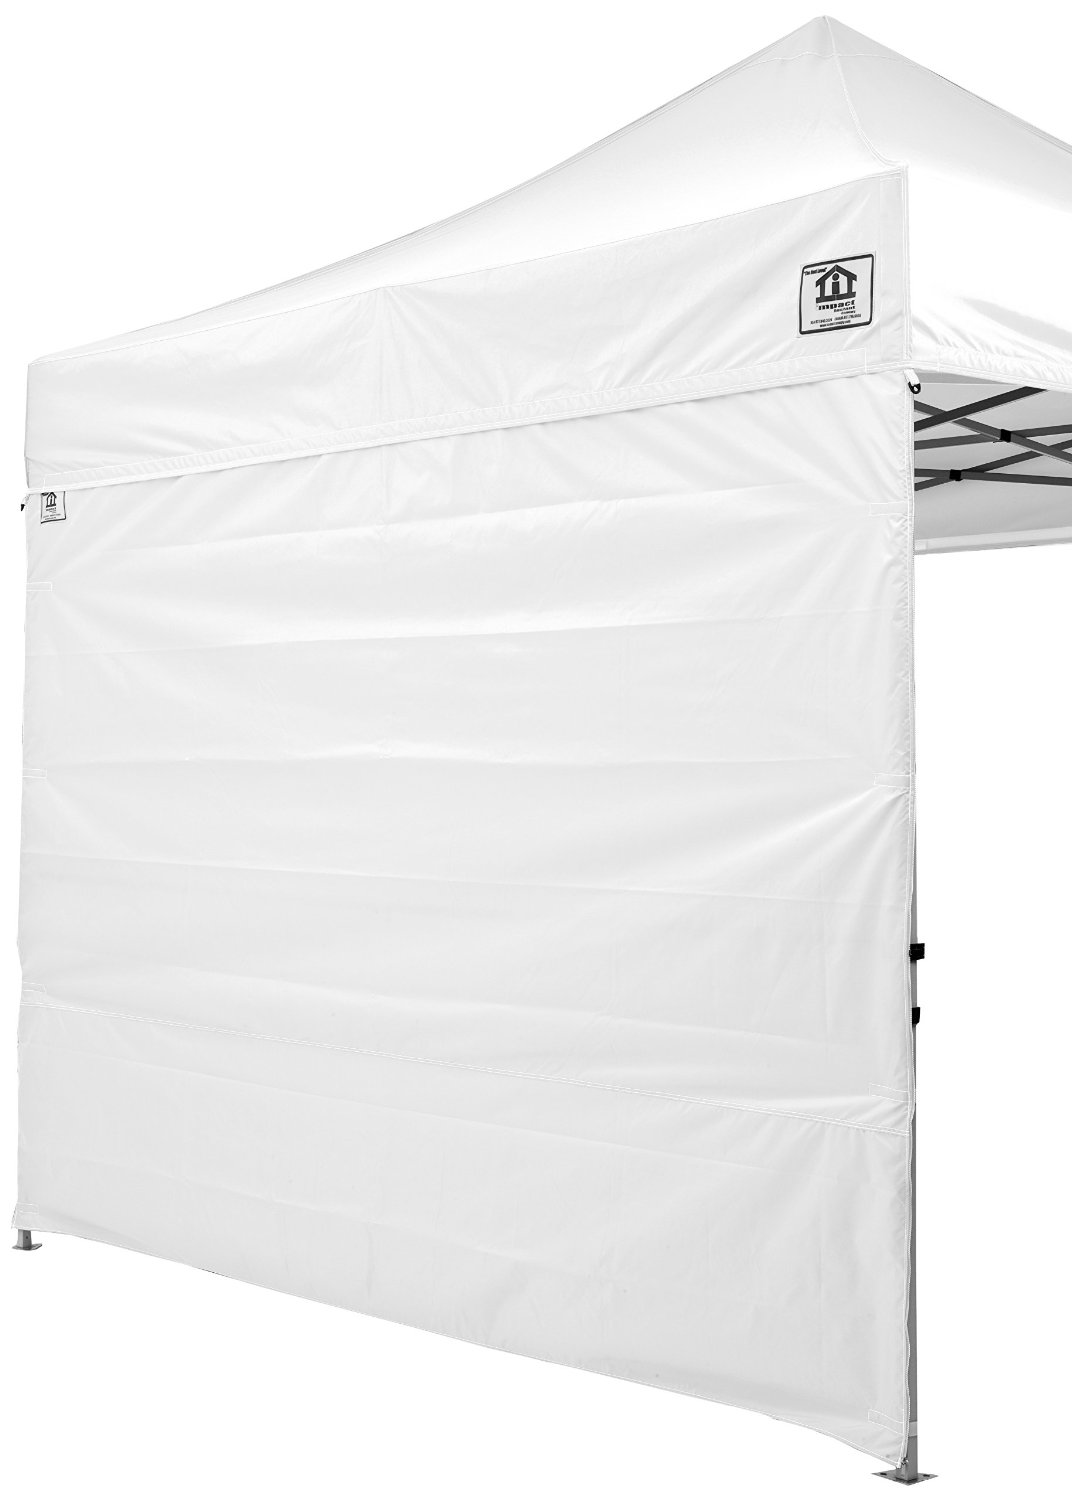 Cheap Pop Up Canopy Side Walls, find Pop Up Canopy Side